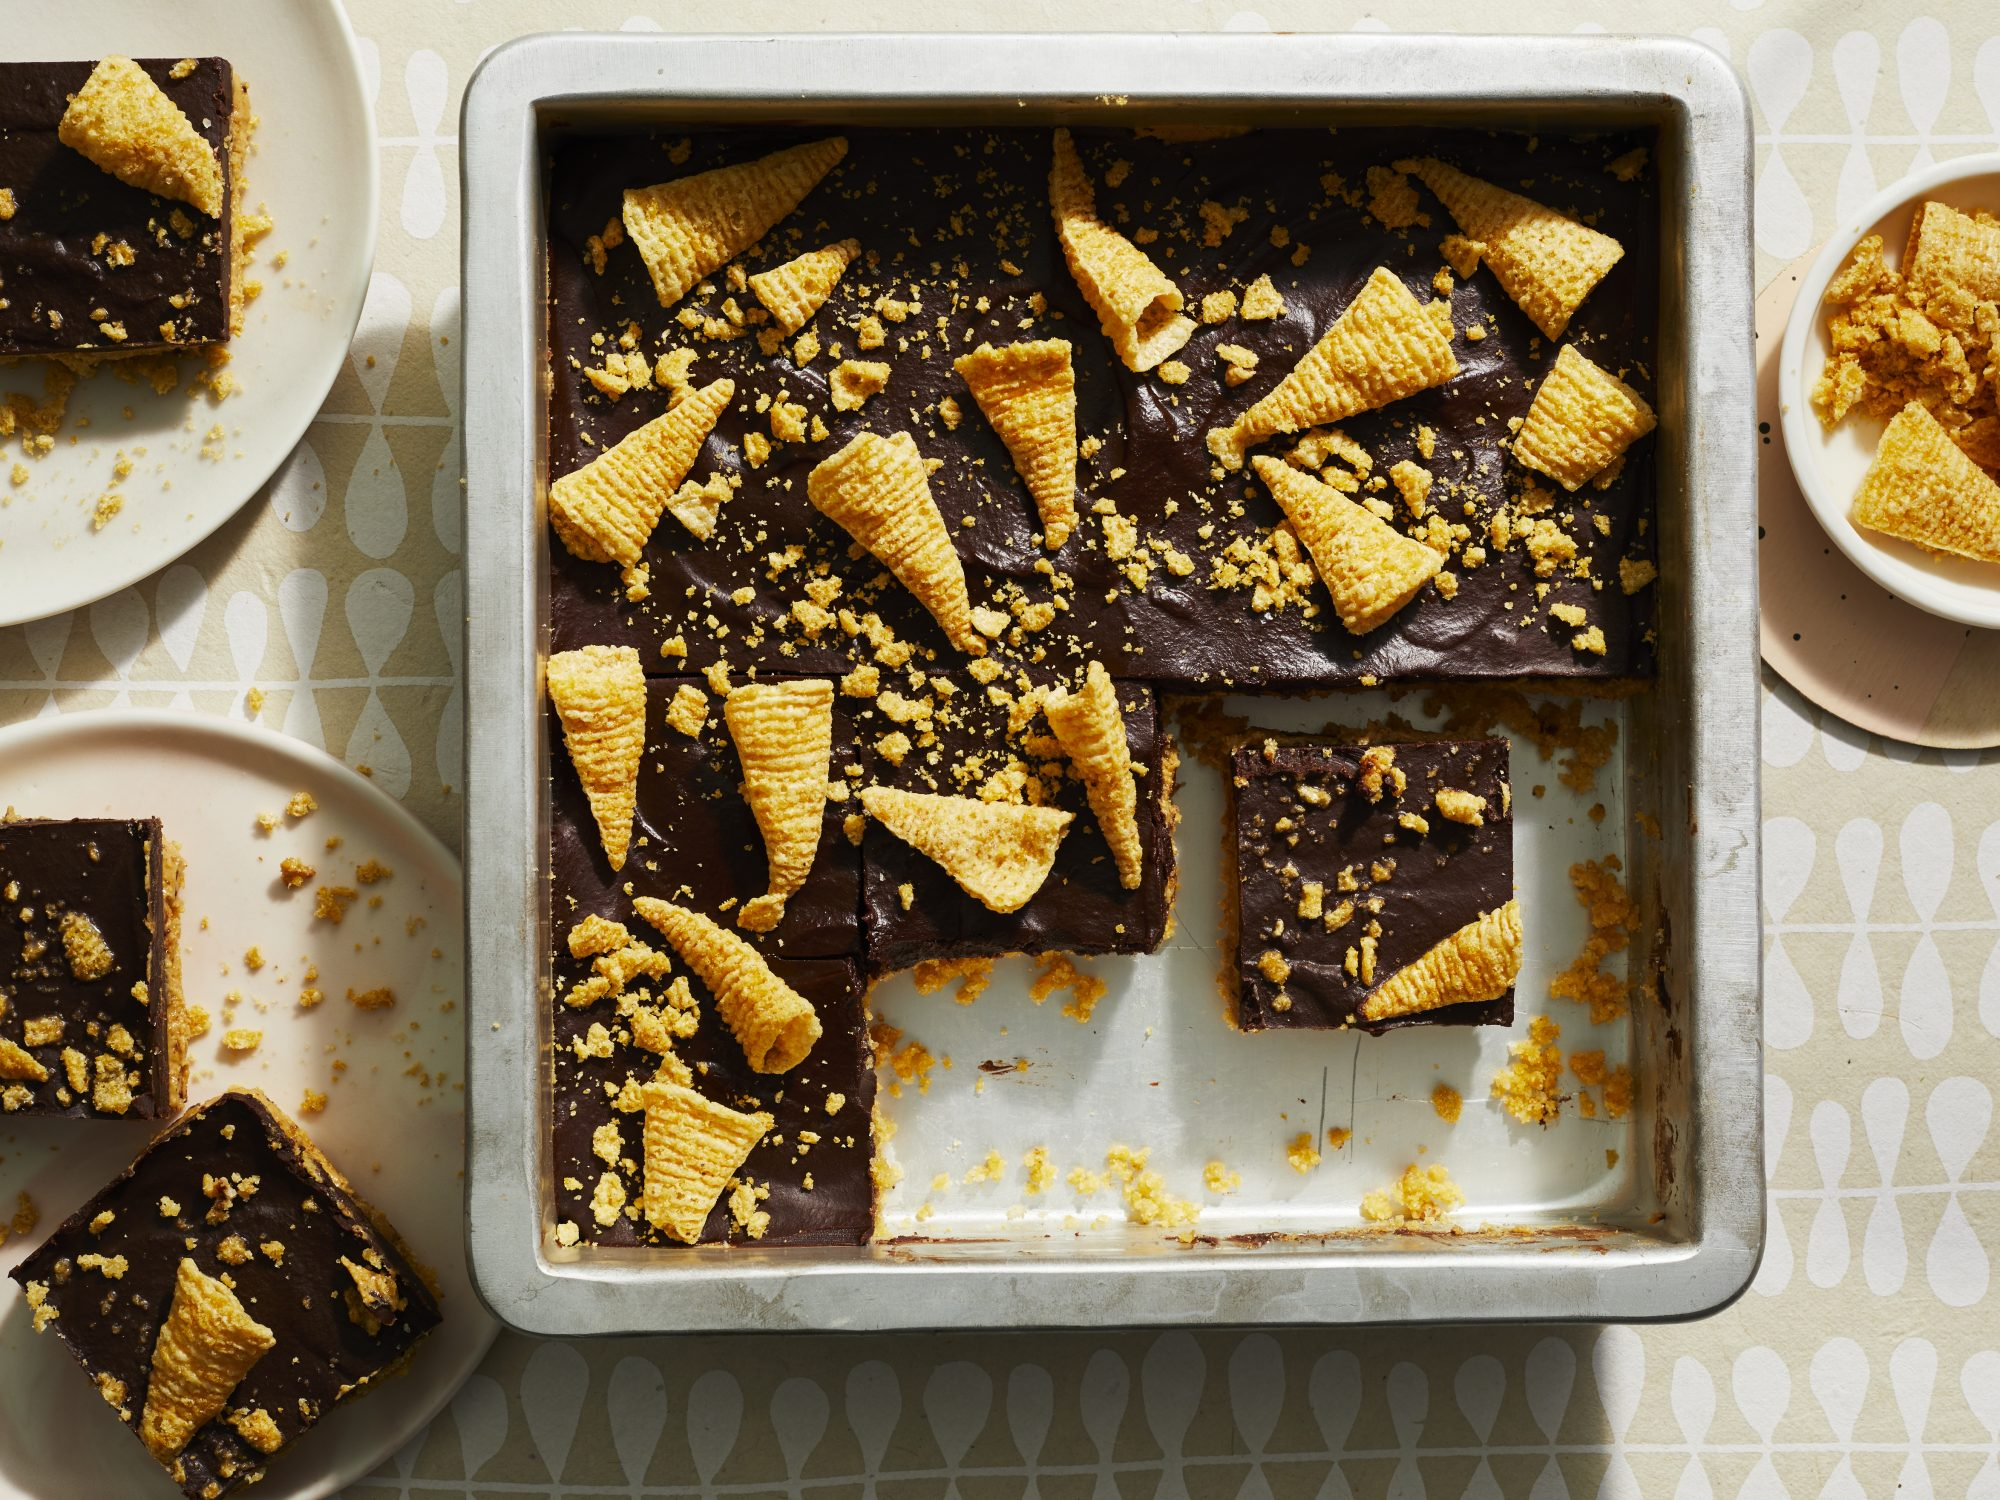 mr-Chocolate-Peanut Butter Bugle Bars image